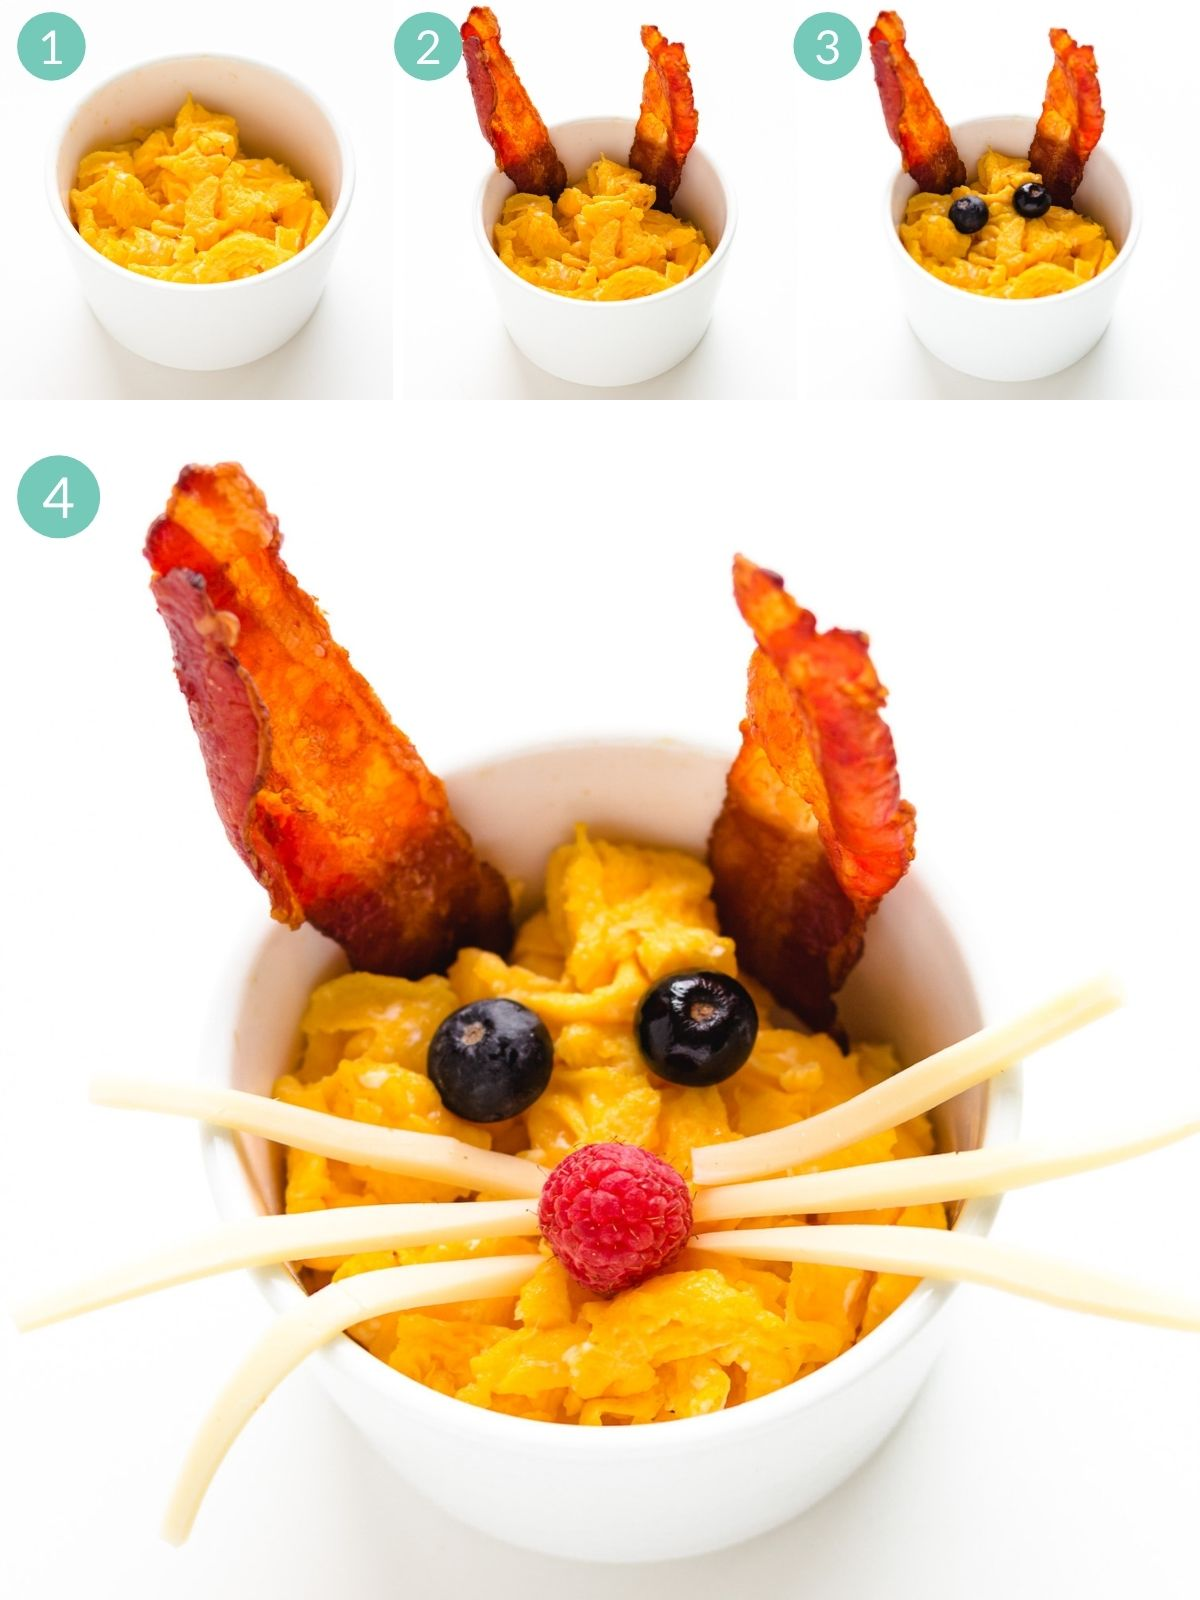 Step by step photo collage showing how to assemble a bacon and scrambled egg bunny.